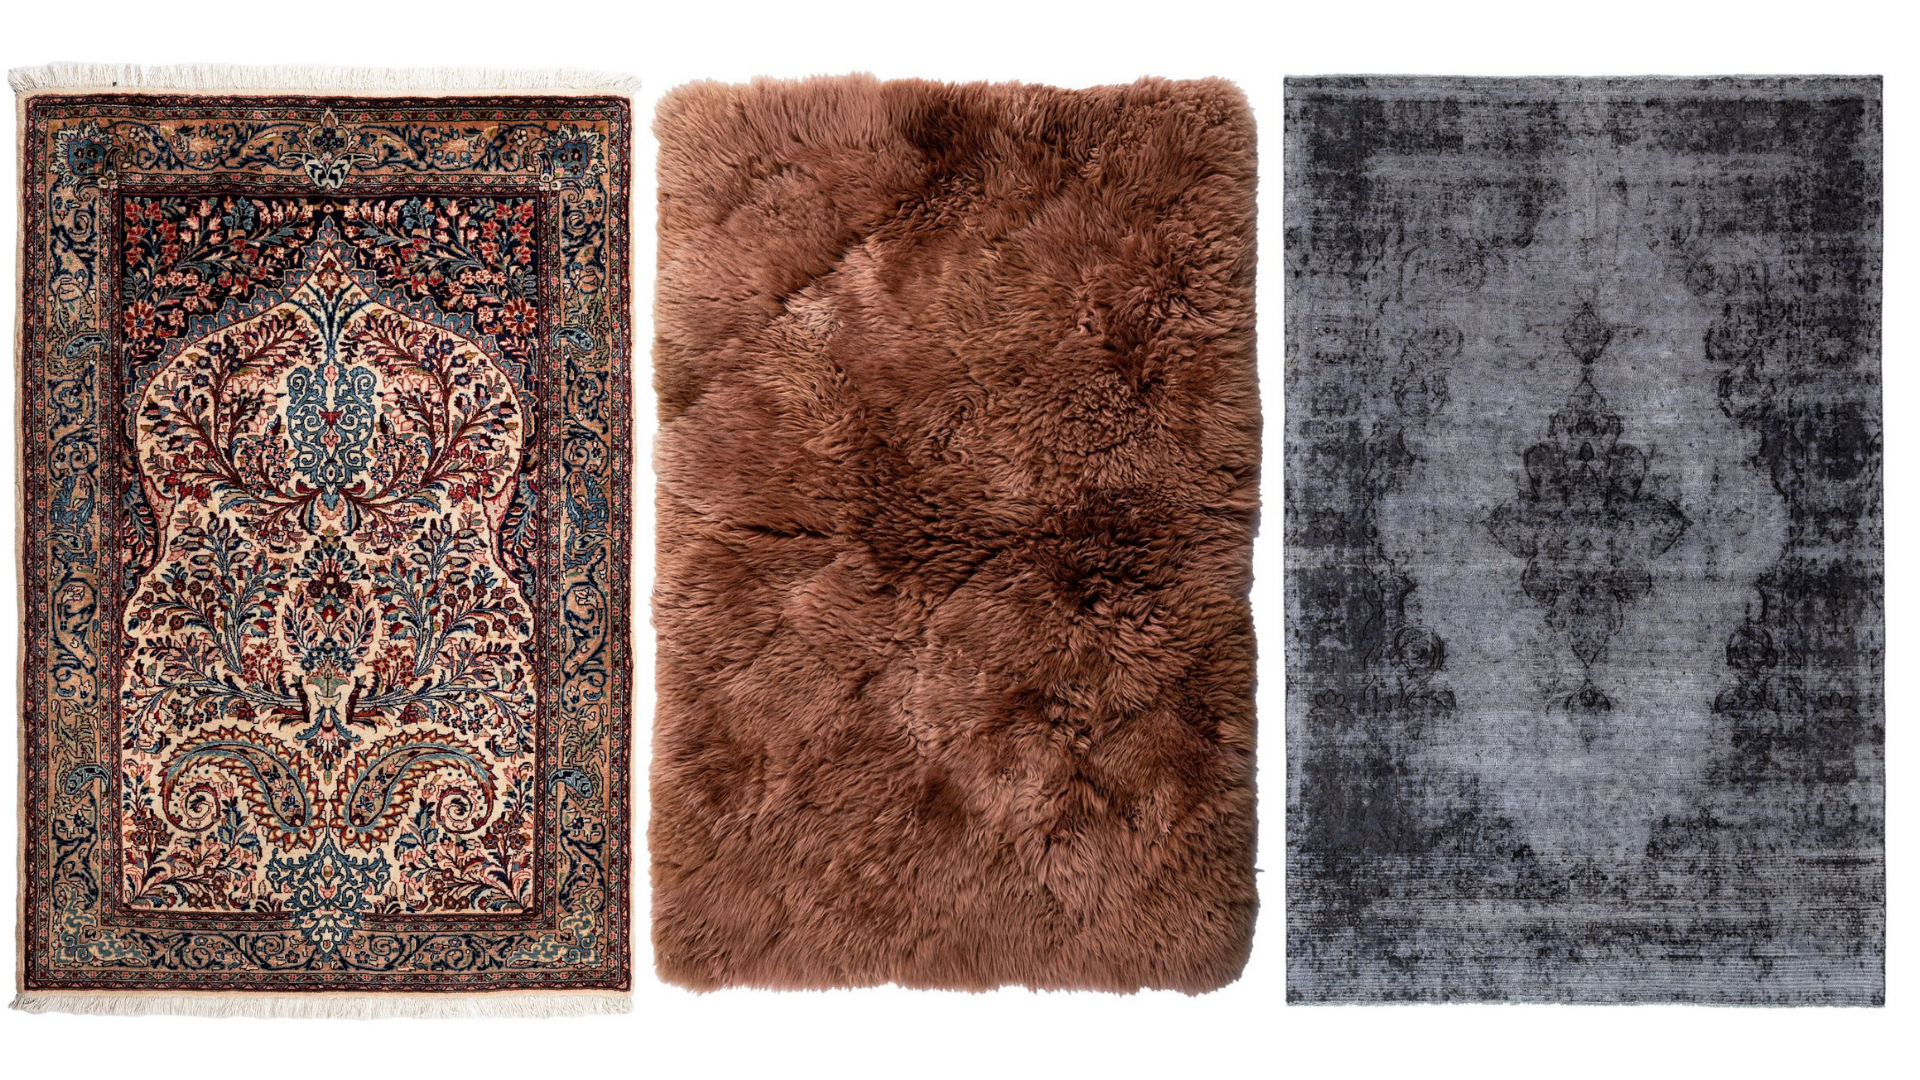 persian rugs, oriental rugs, london rugs, uk rugs, rug collections, home decor, home accessories, interior decor, interior design, interior designers, bedroom decor